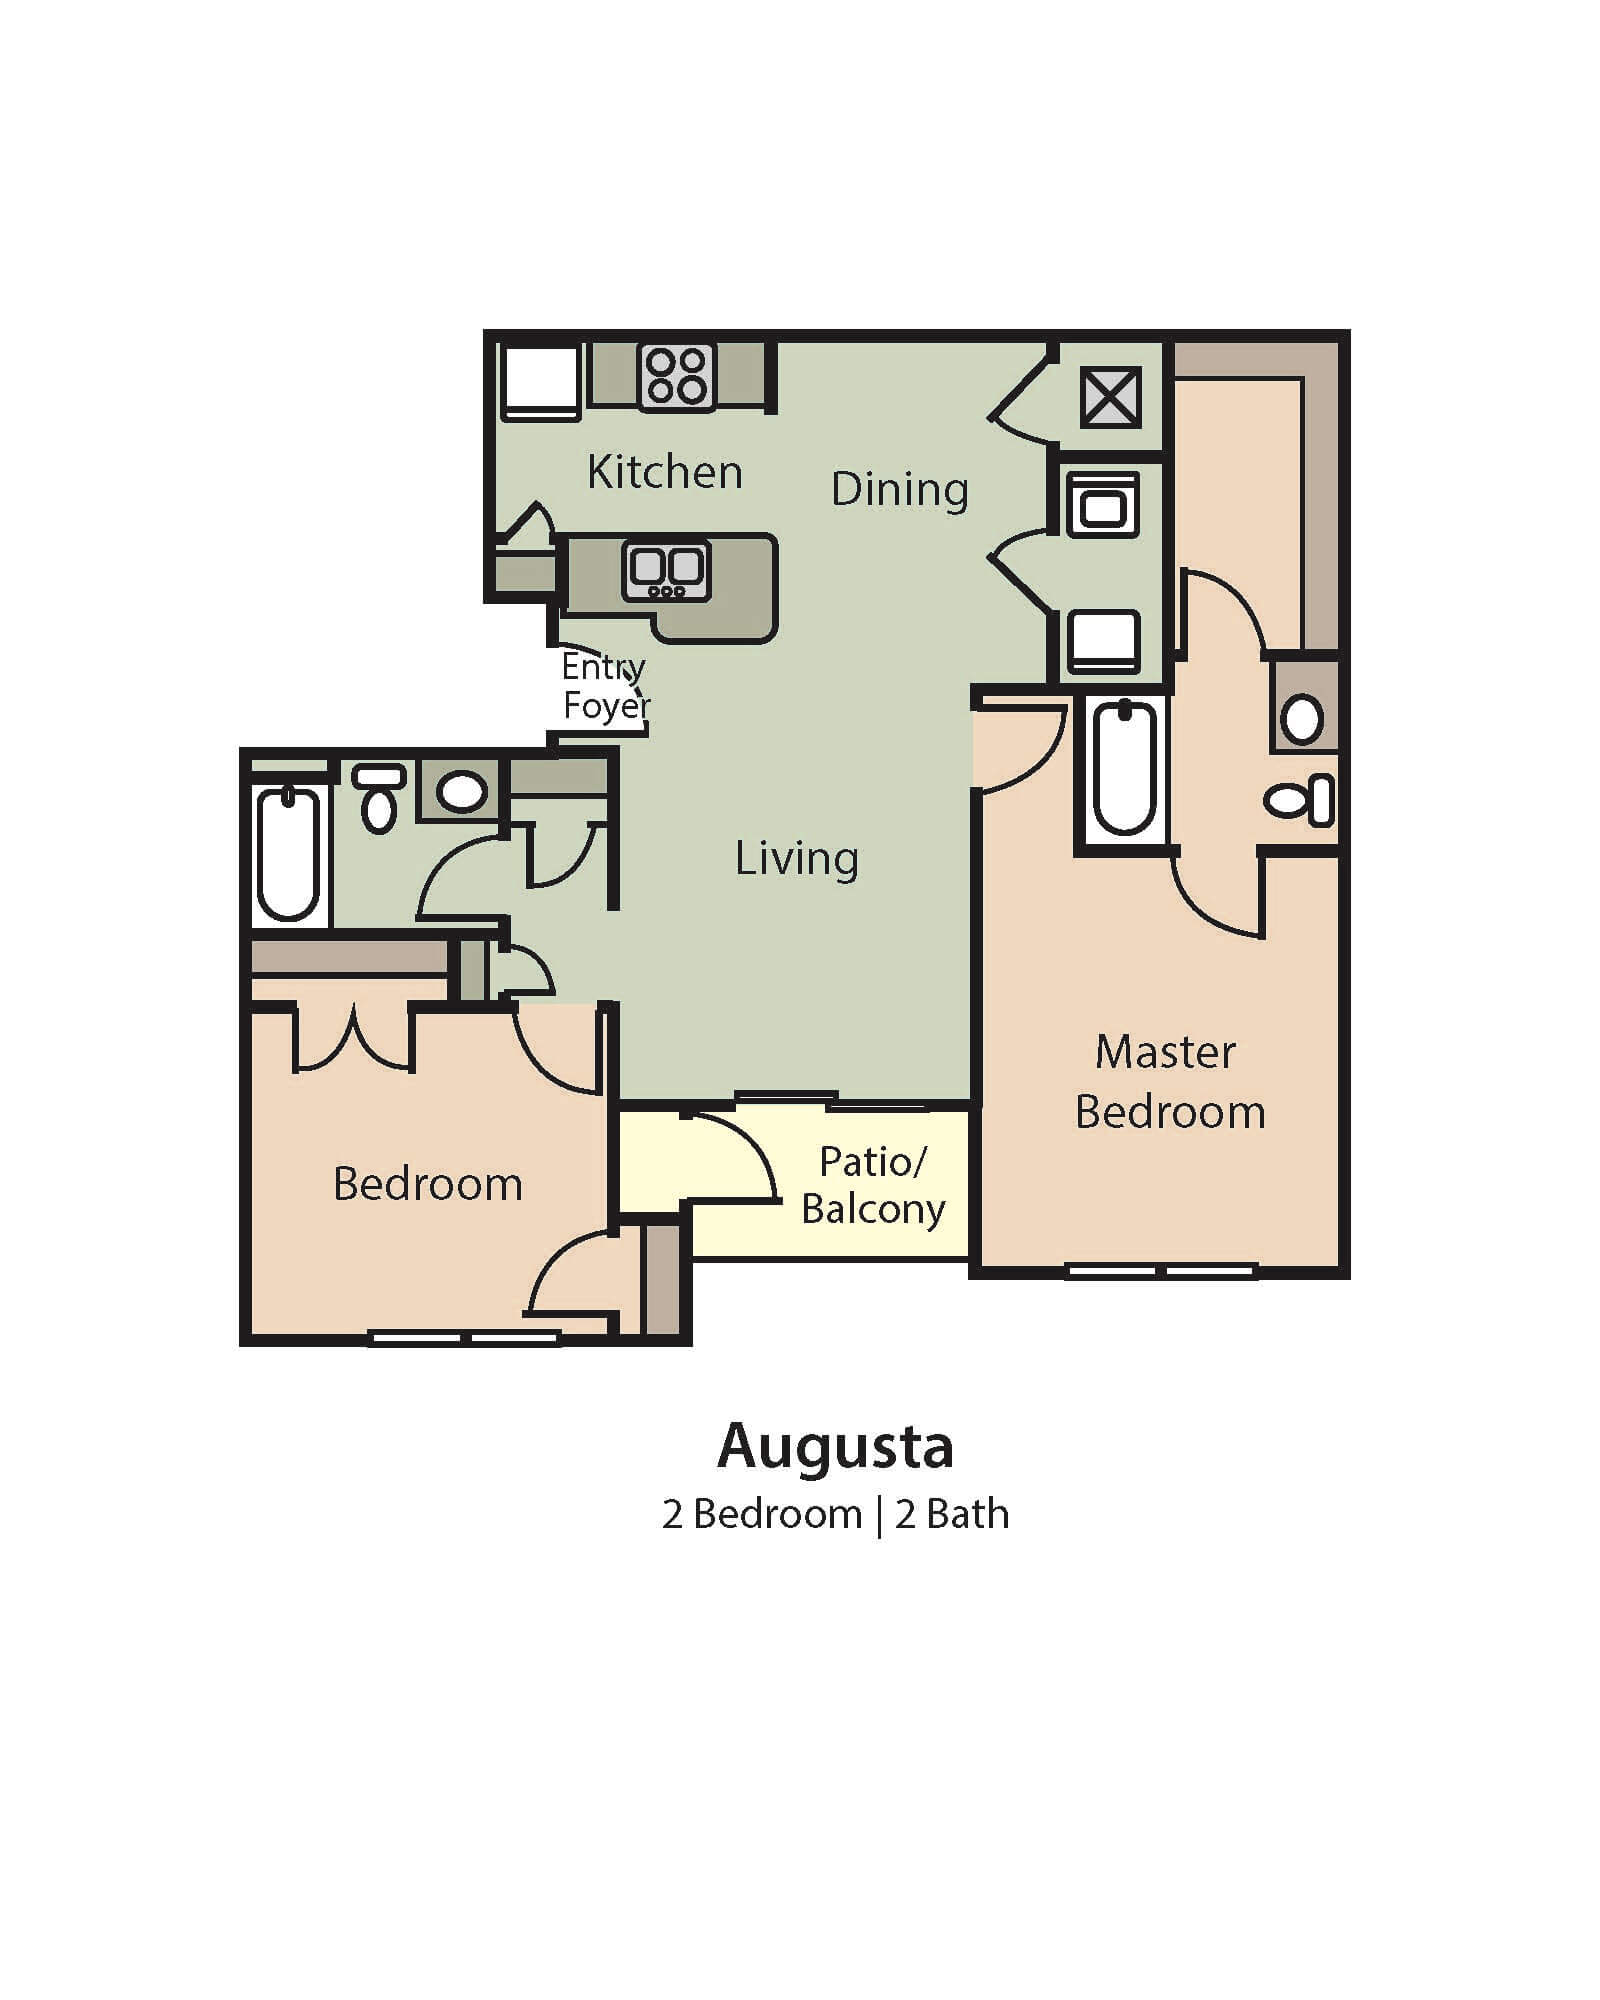 Augusta Floor Plan, 2 Bedrooms, 2 Baths